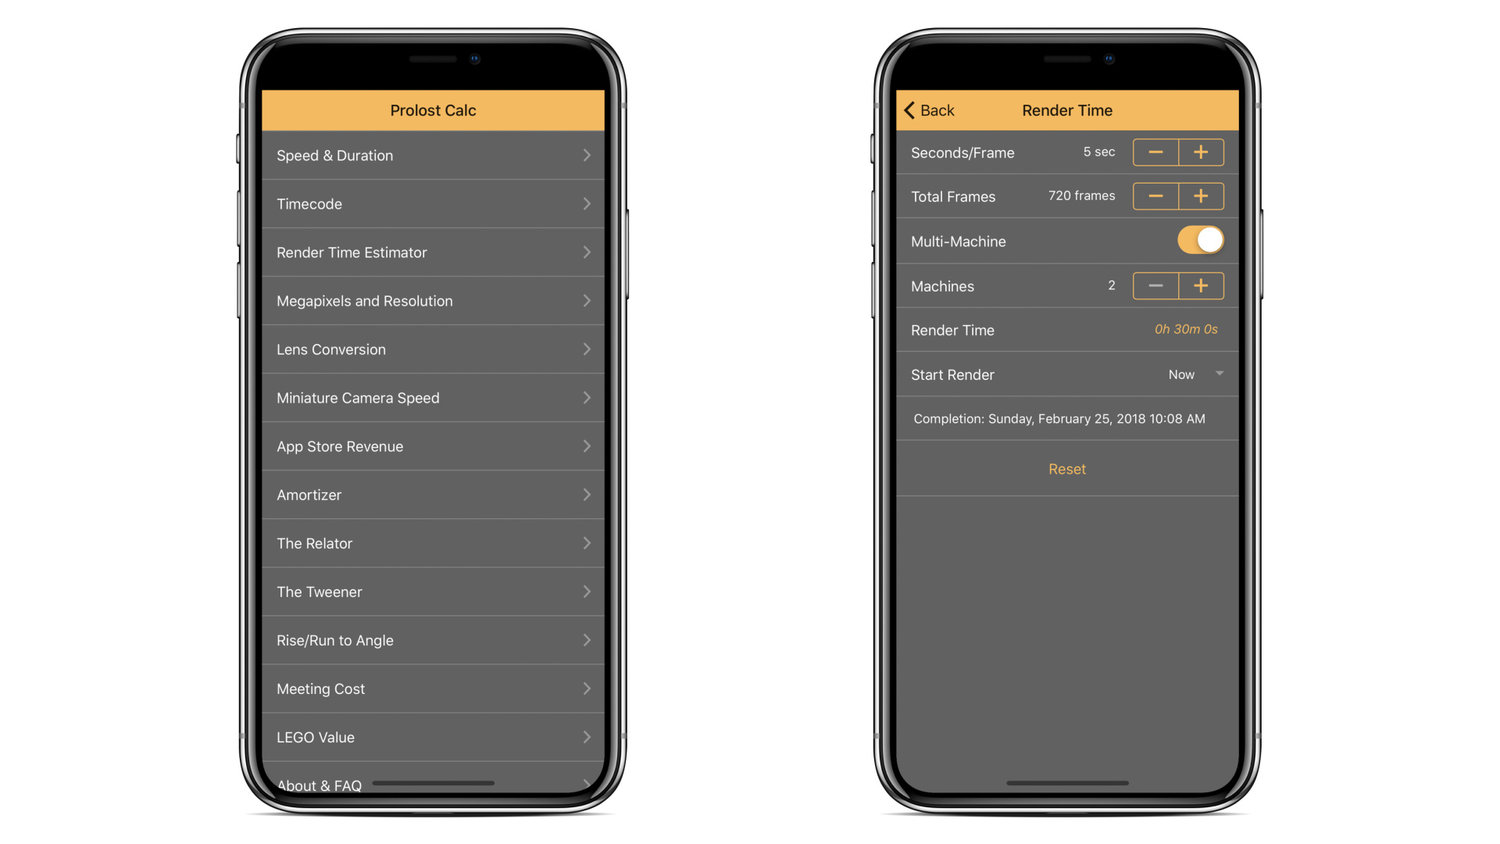 Prolost Calc — Prolost Store